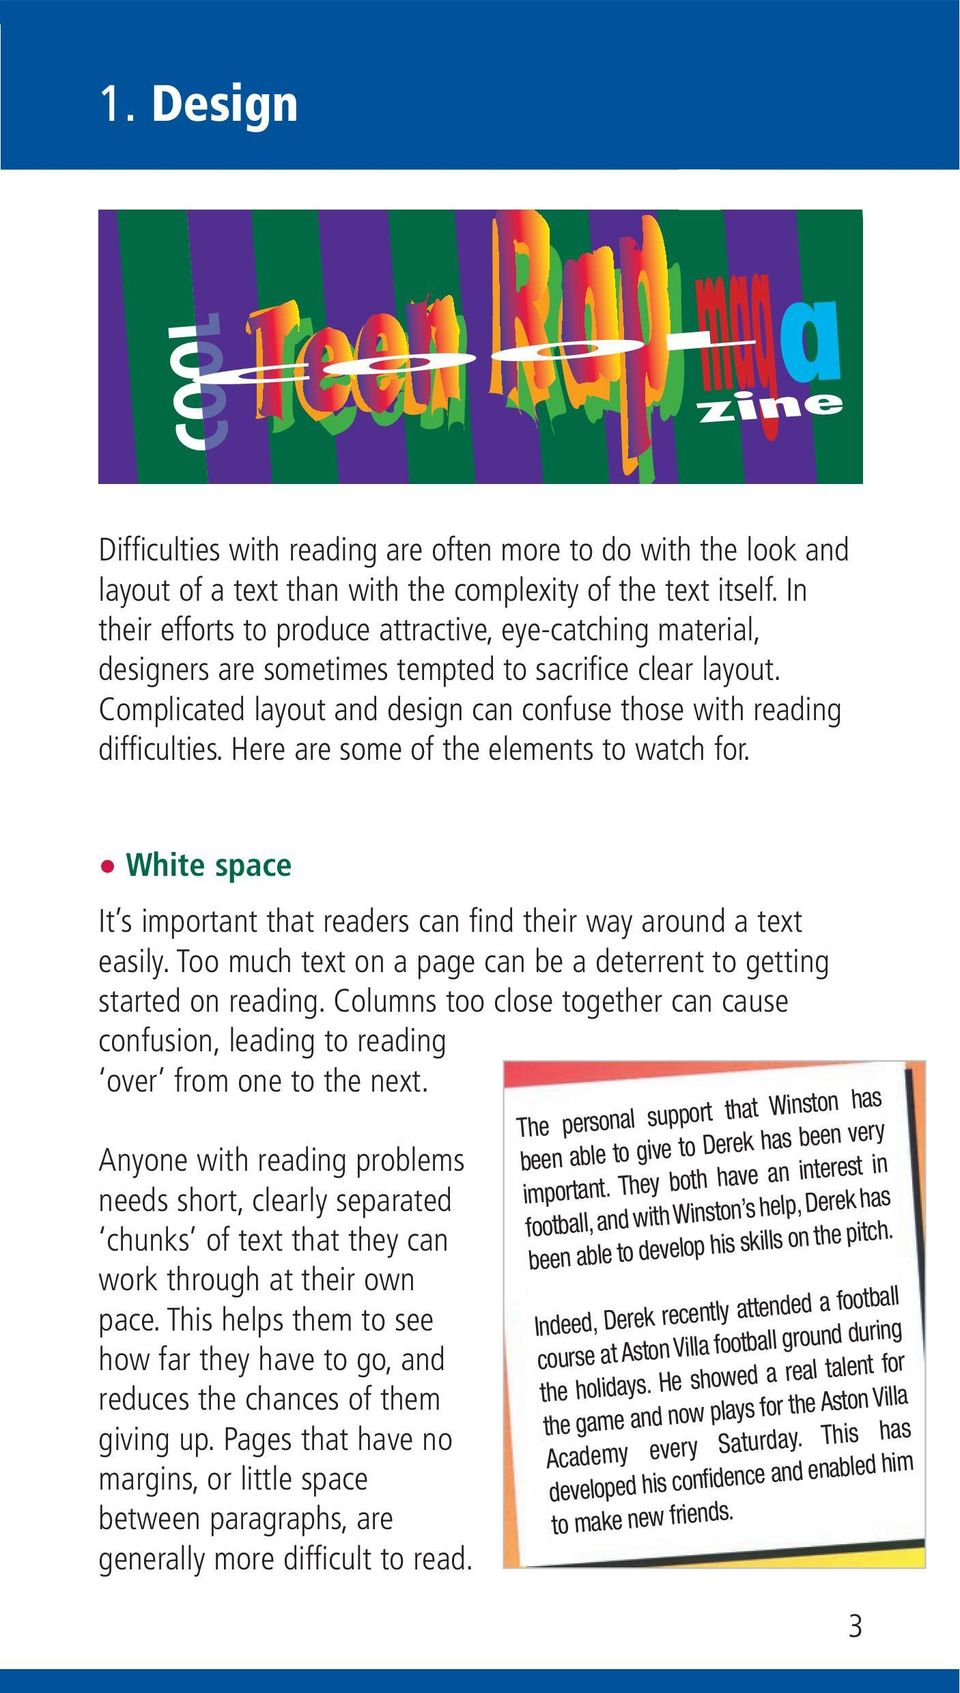 Here are some of the elements to watch for. White space It s important that readers can find their way around a text easily. Too much text on a page can be a deterrent to getting started on reading.